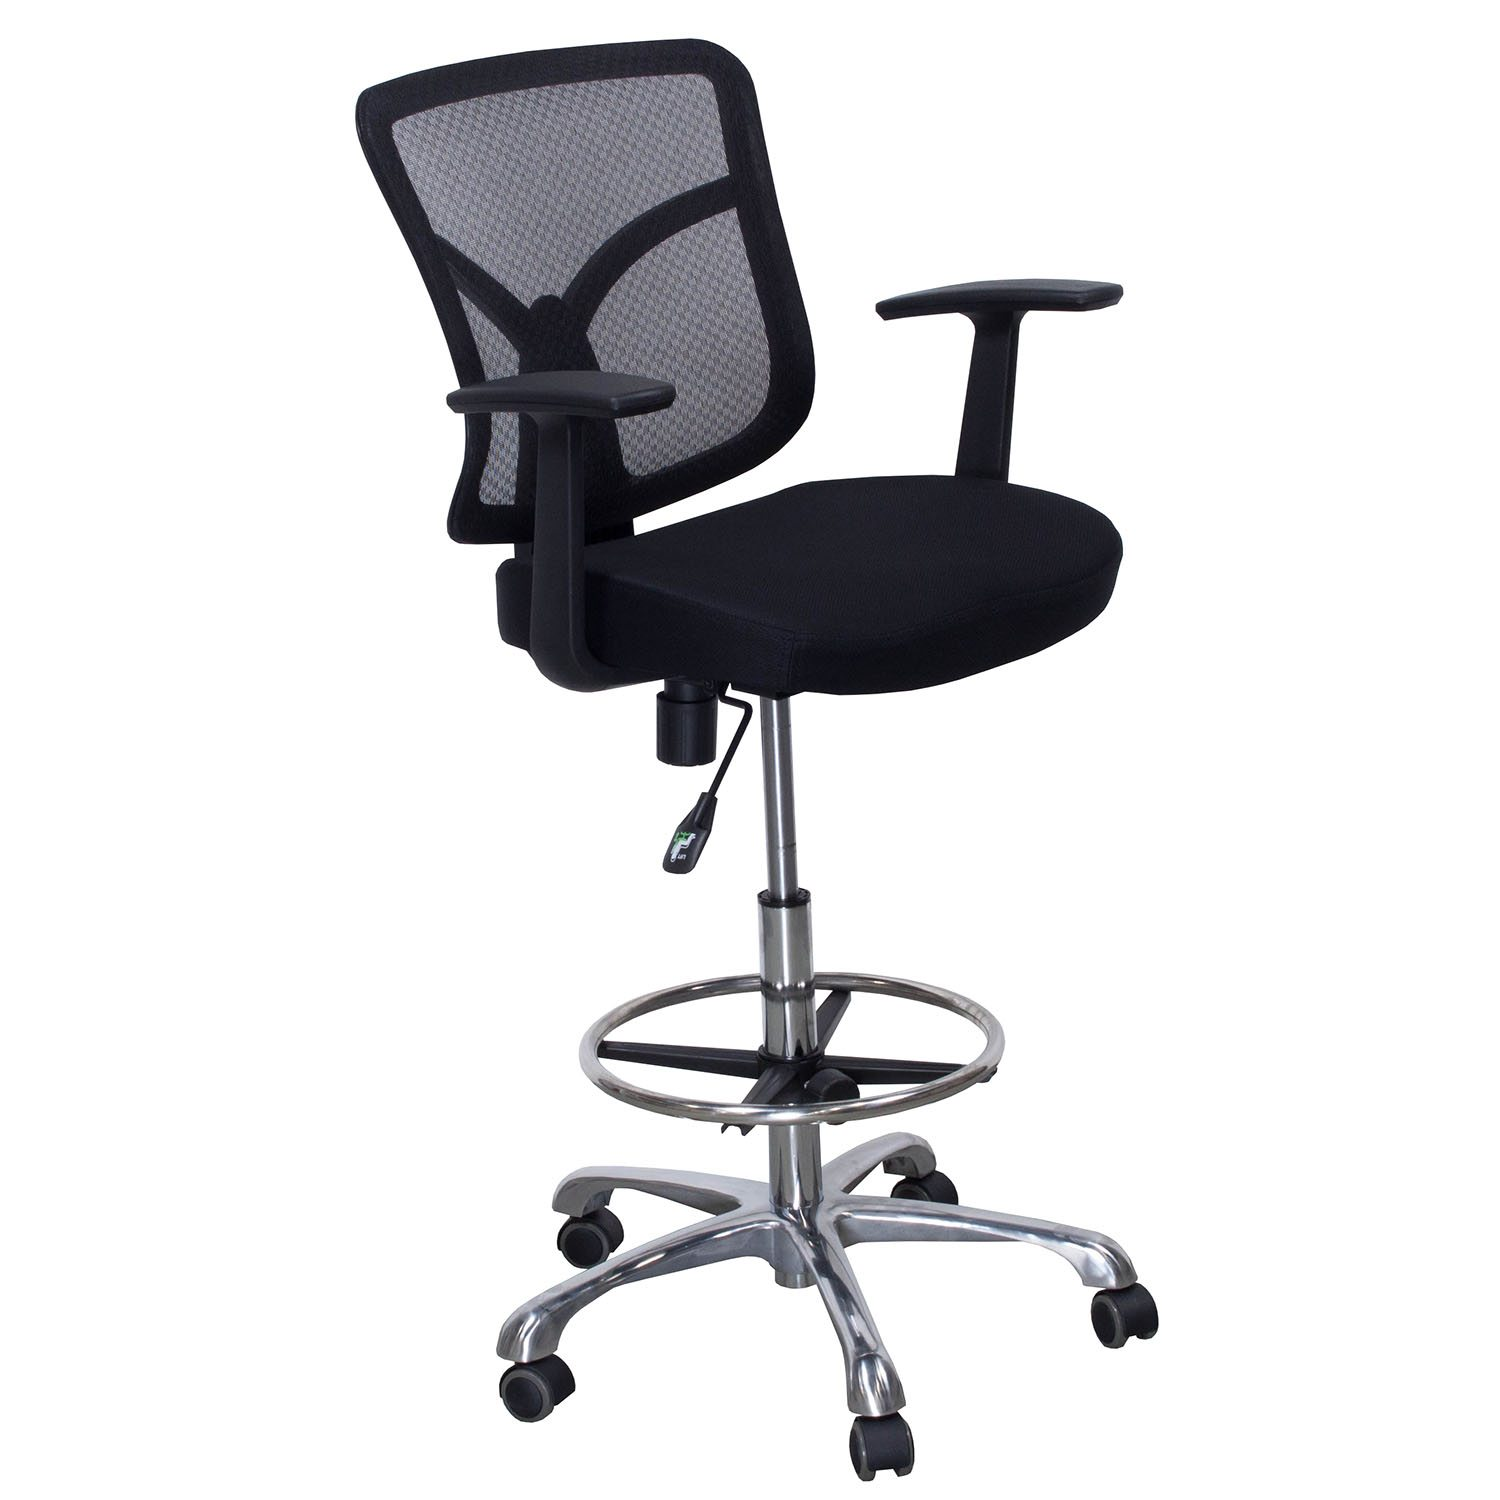 Stool Chair Gosit New Mesh Back Office Drafting Stool Black